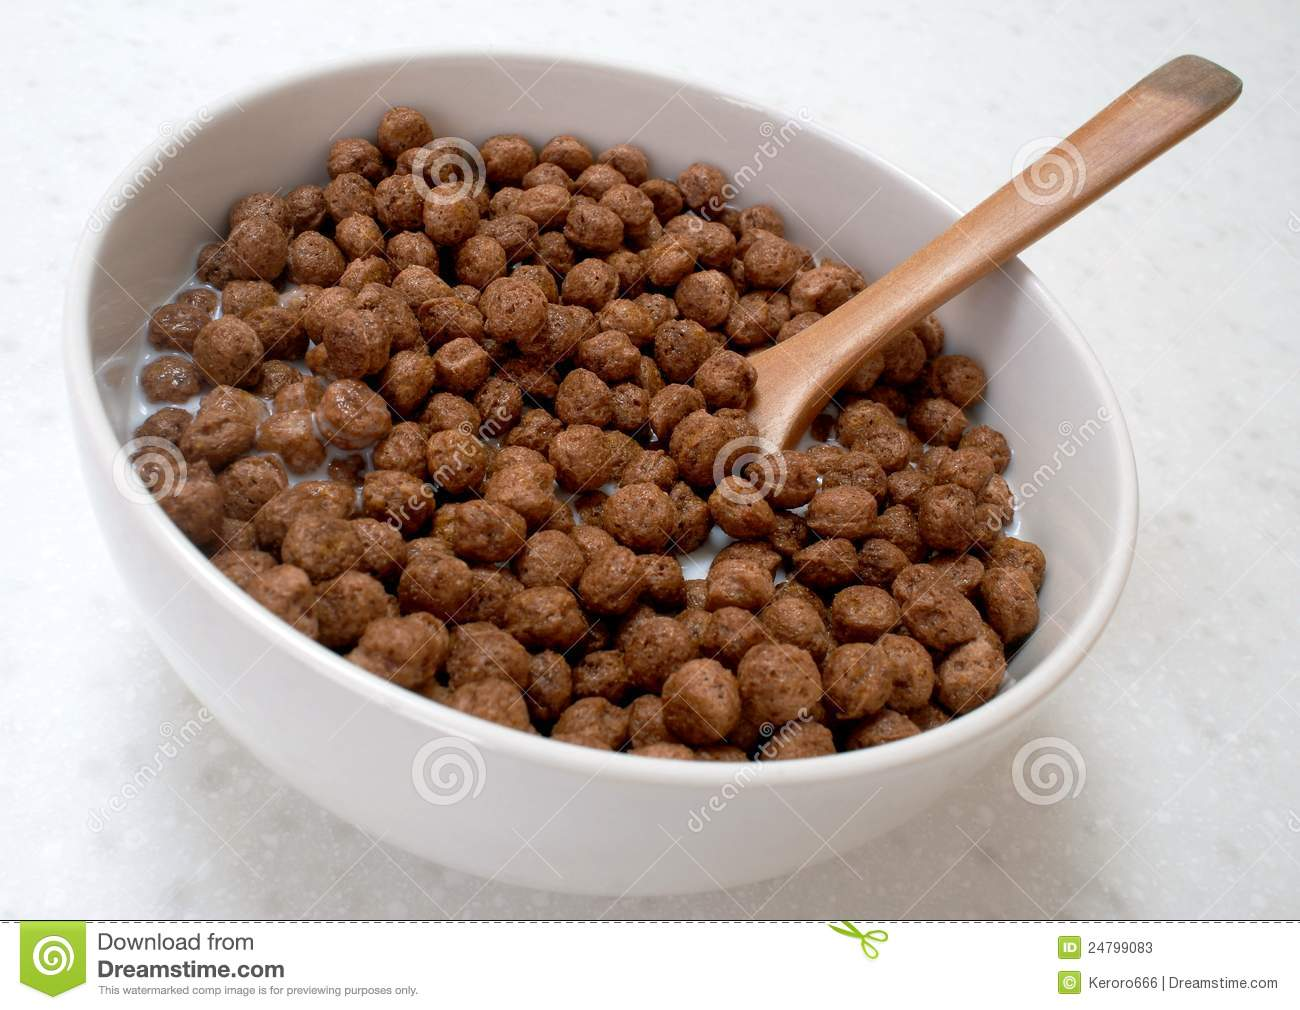 Chocolate Cereal Images - Reverse Search